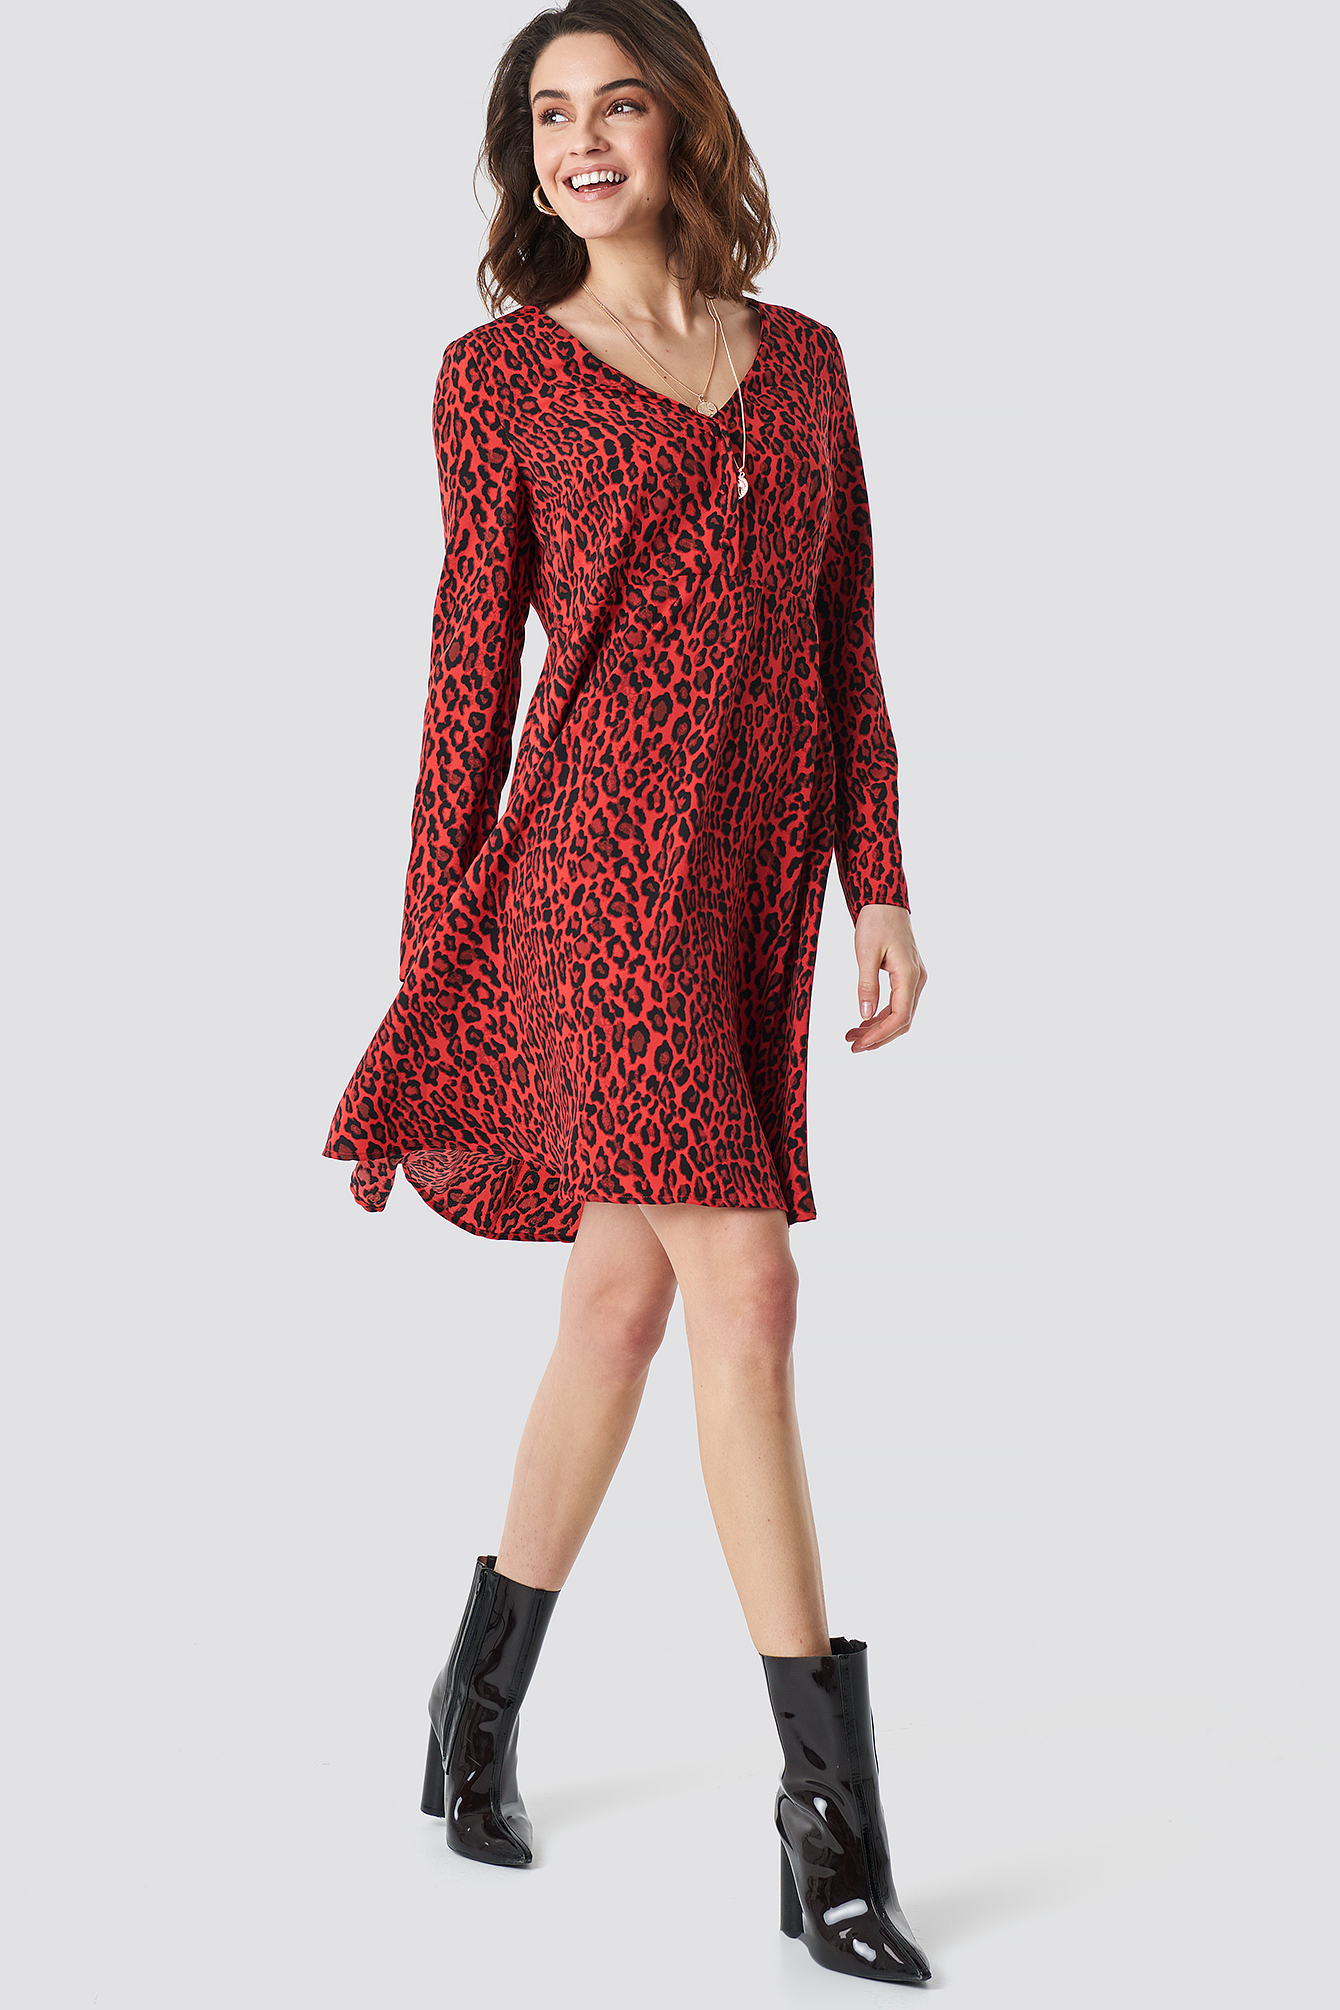 Leopard Print Button Up Ls Dress NA-KDLOUNGE.DE